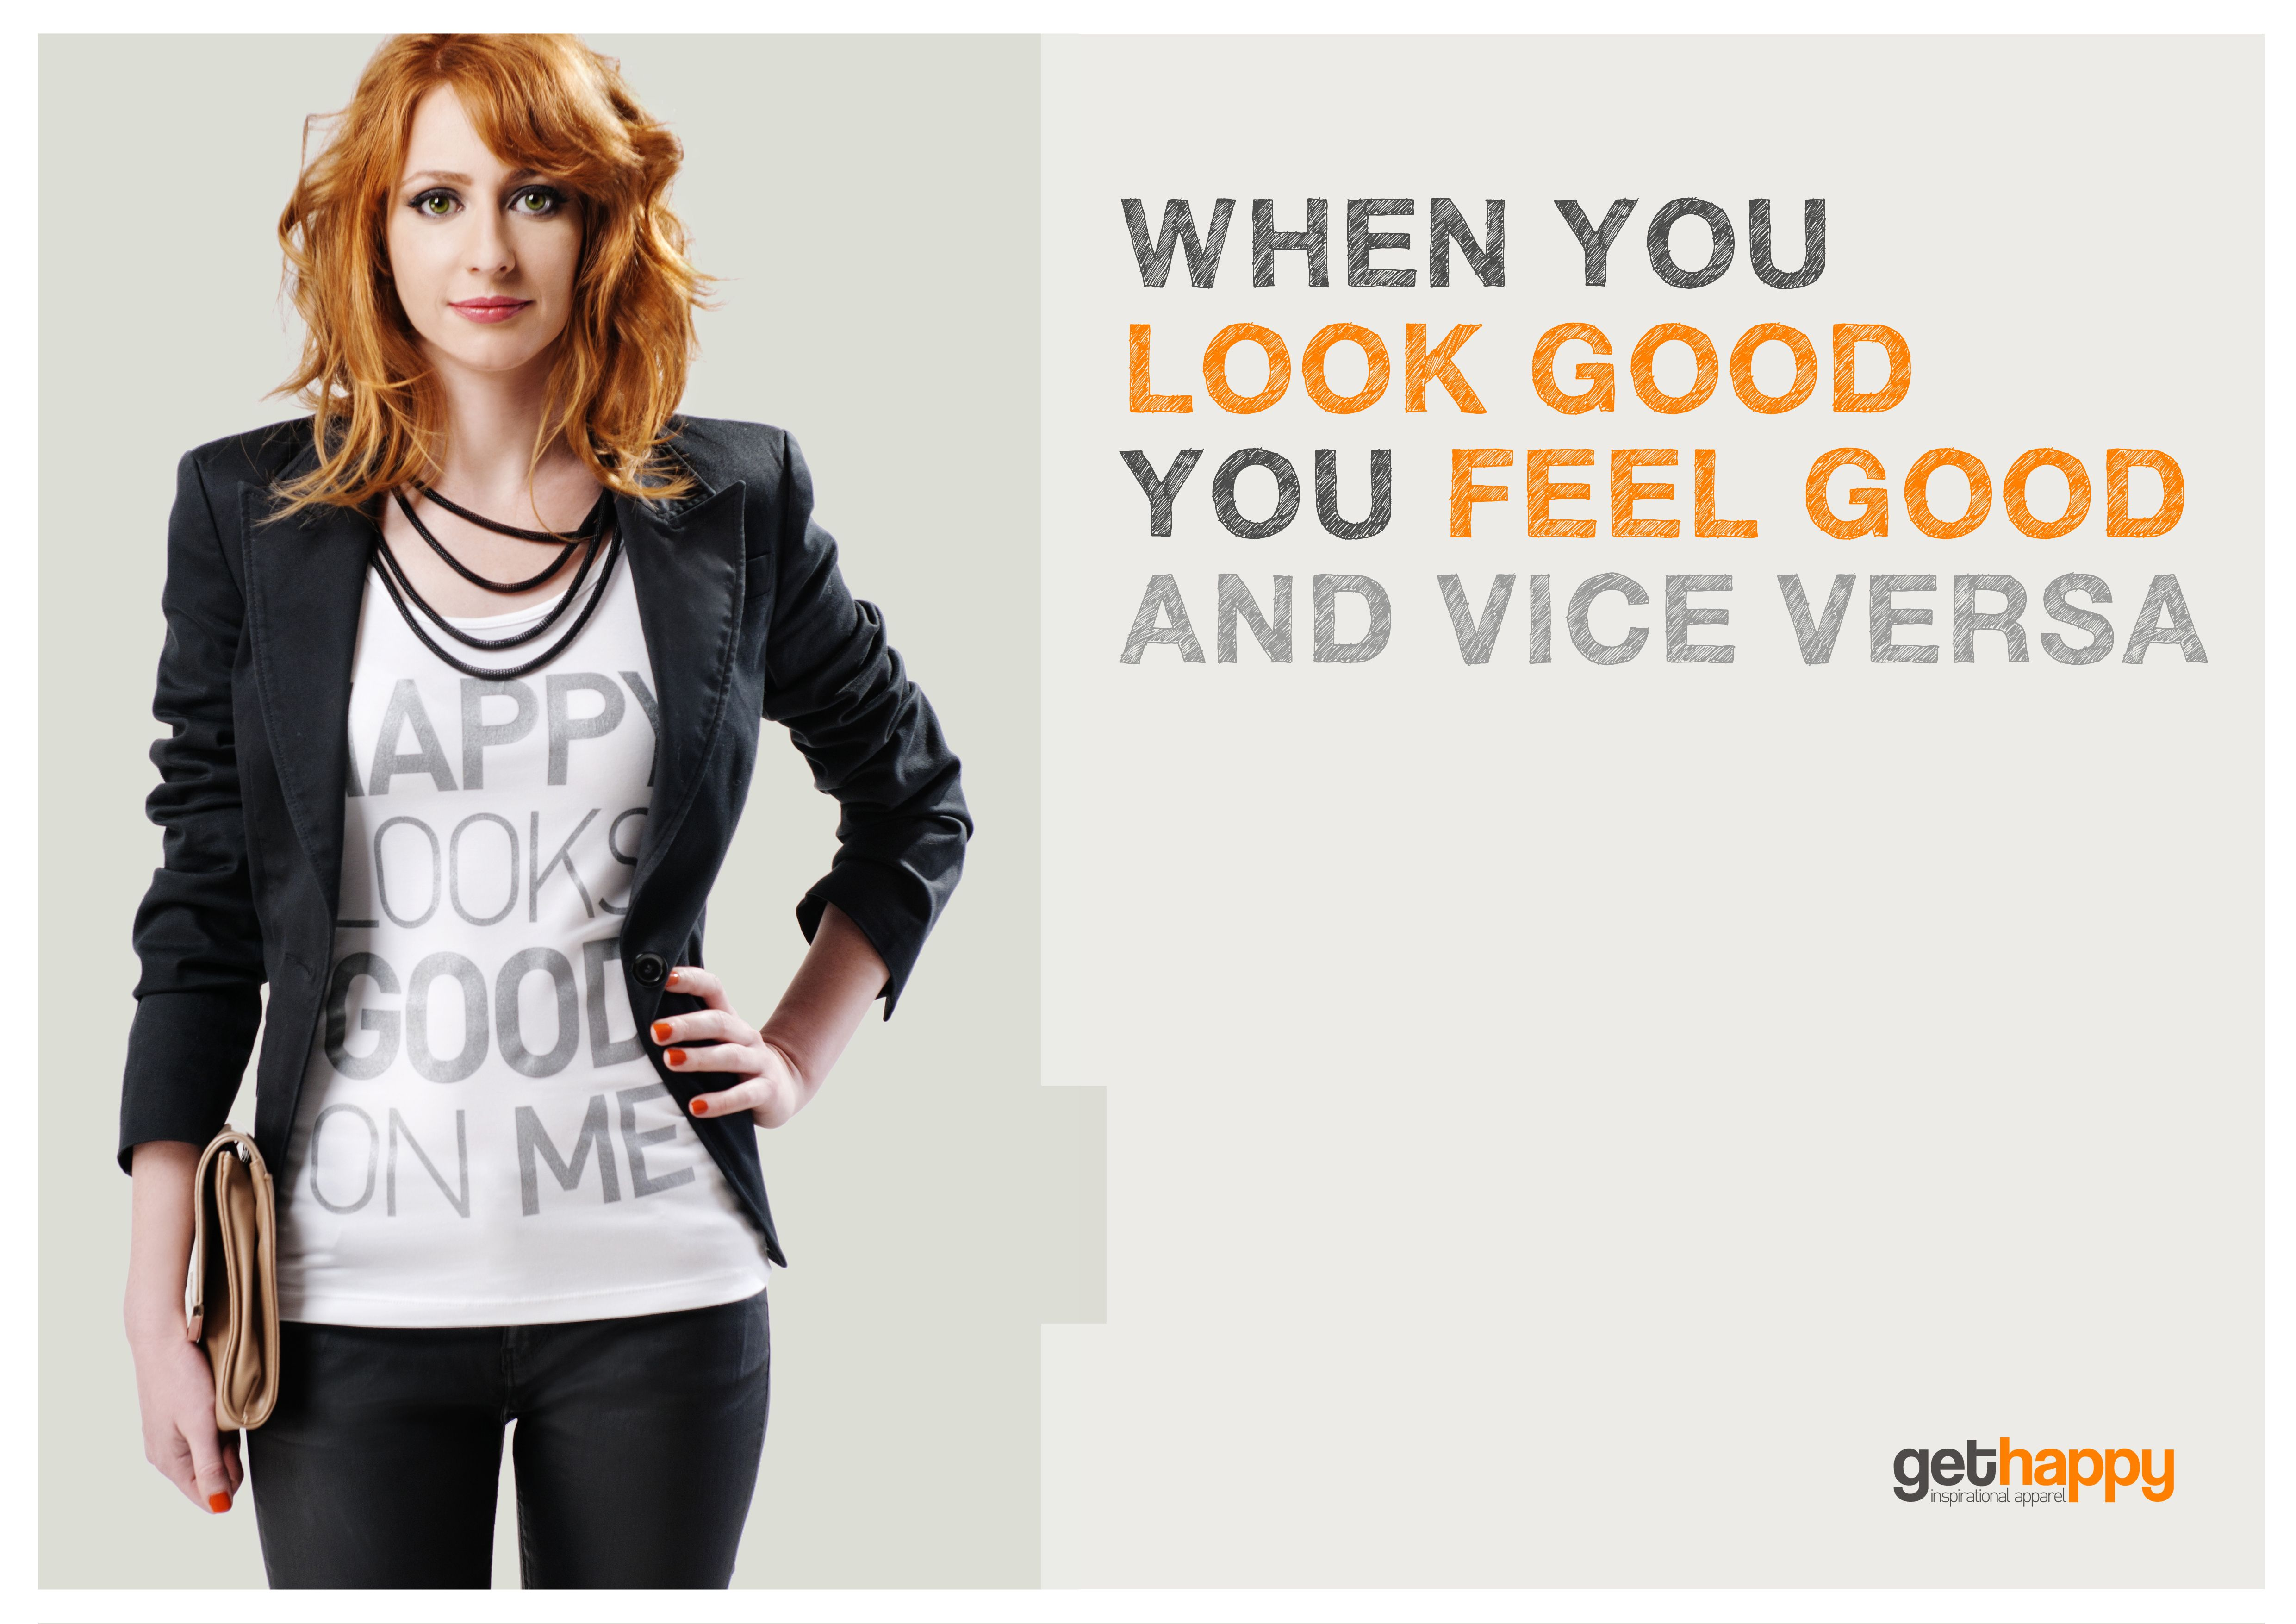 Look Good, Feel Good, Happy Ladies!    Get Happy T-Shirt makes You Feel Good: From Business Meeting to the Yoga Class. You can wear it anywhere!  http://gethappynow.ca/collection.html